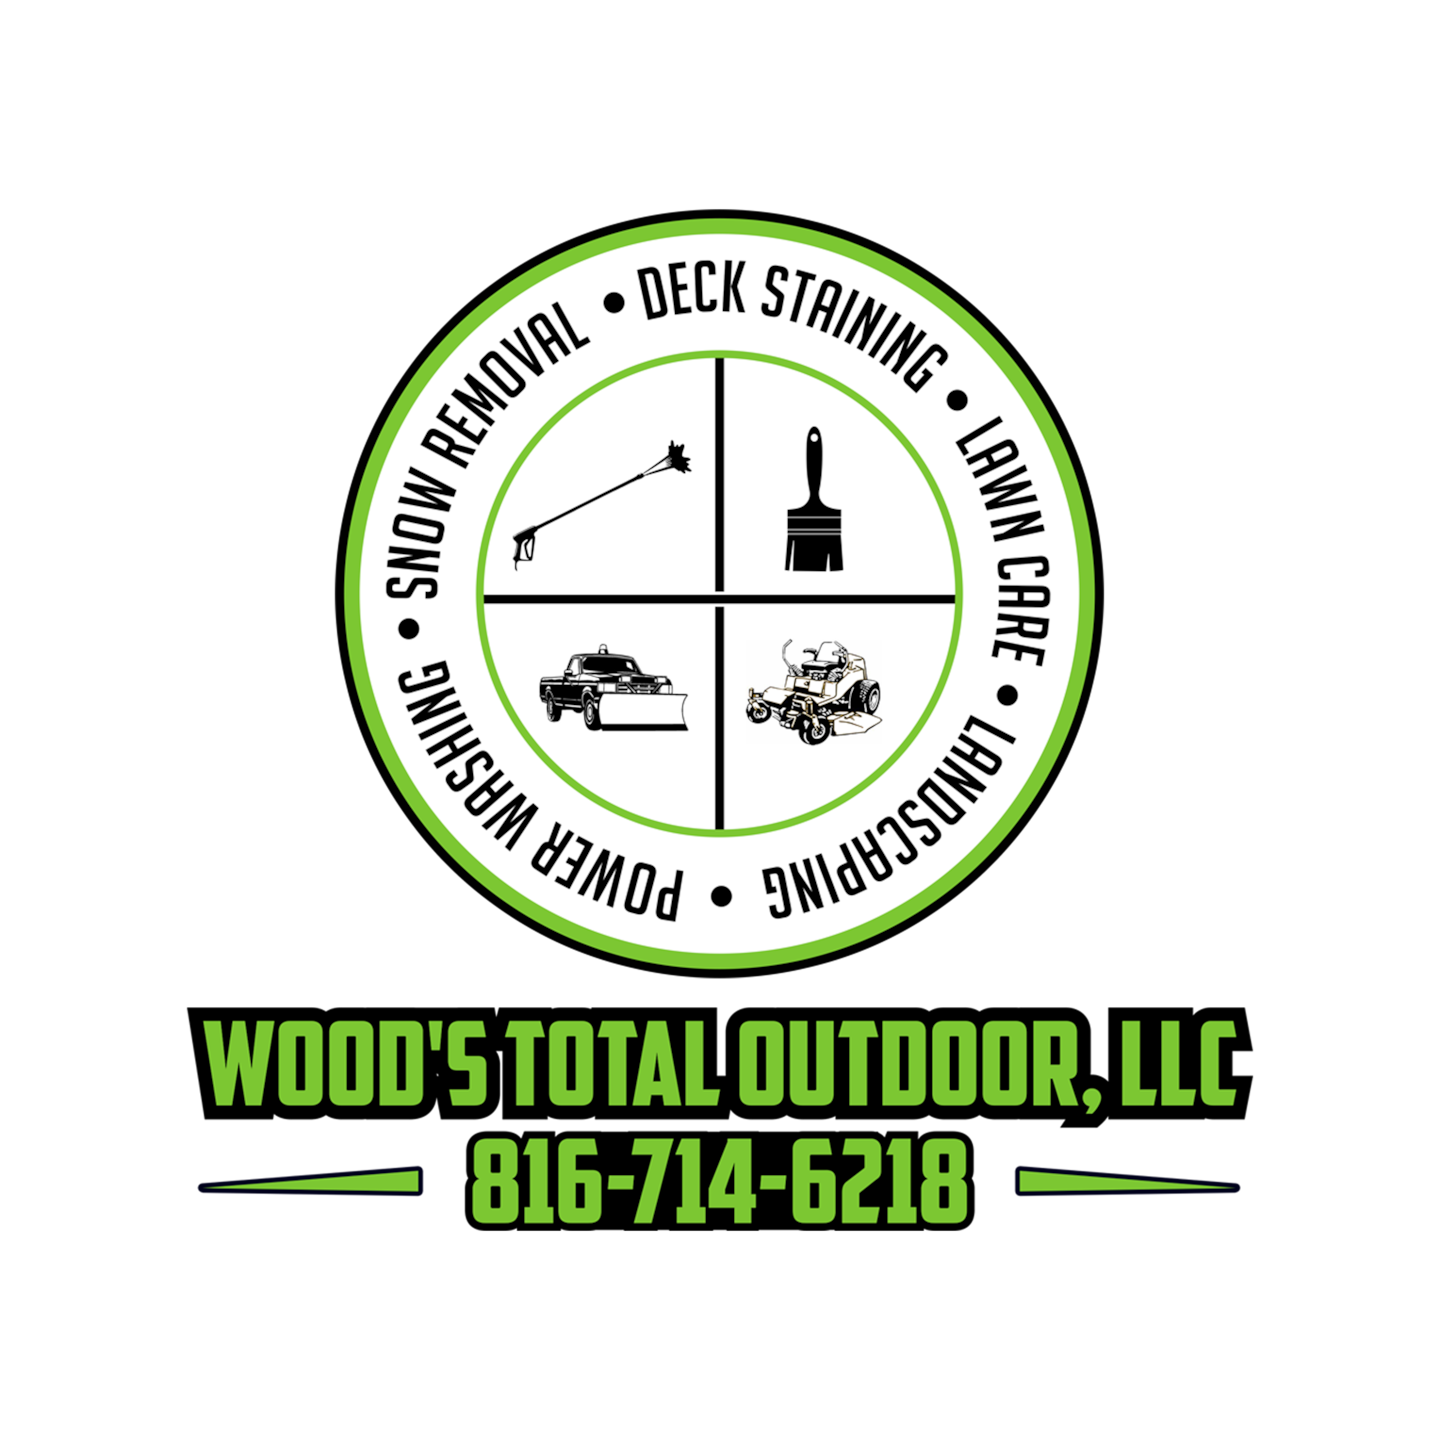 Wood's Total Outdoor